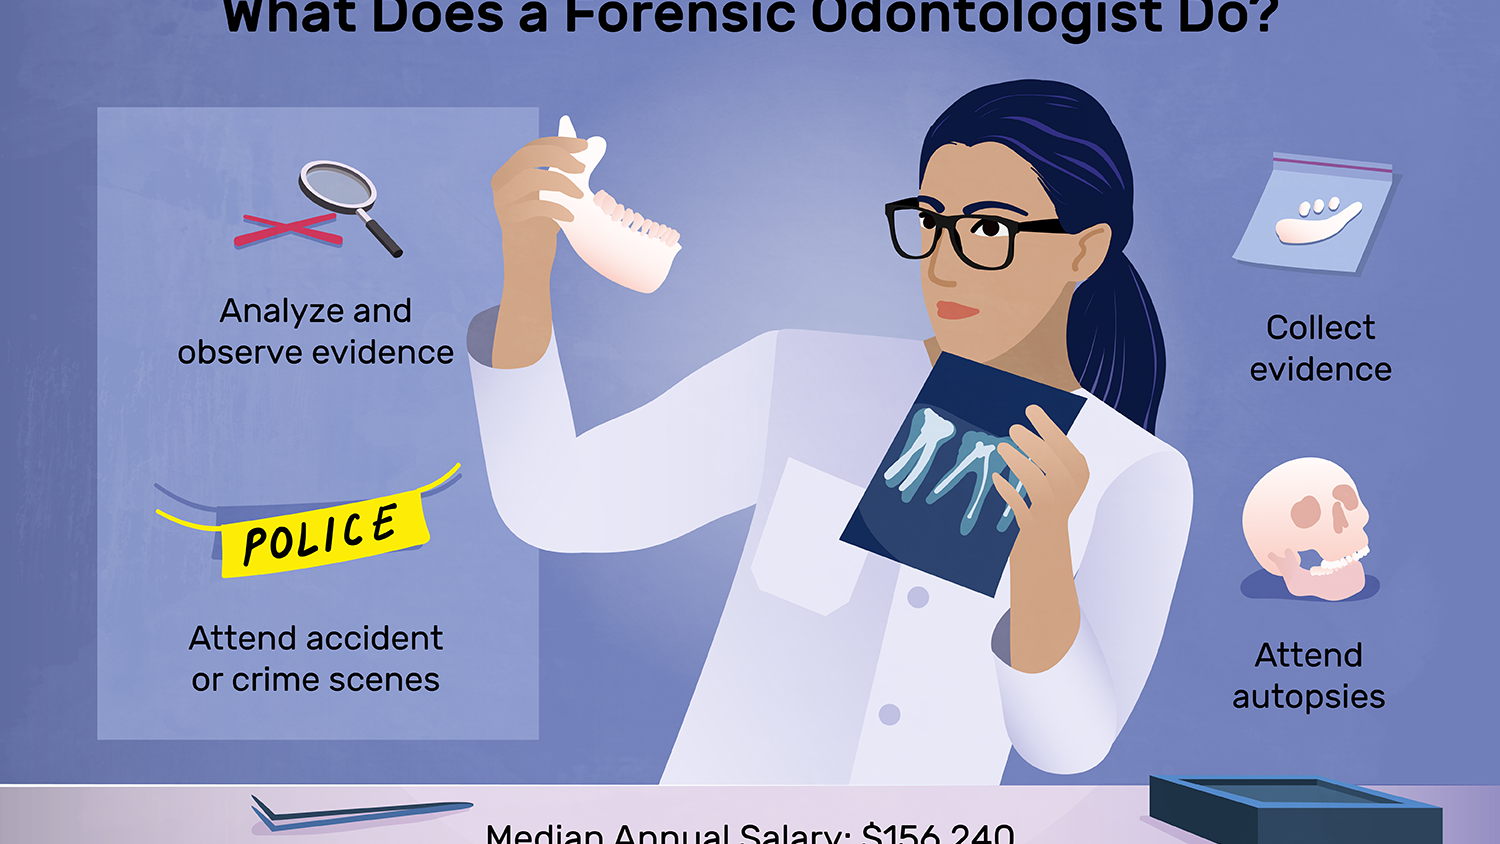 Forensic Odontology Career Profile